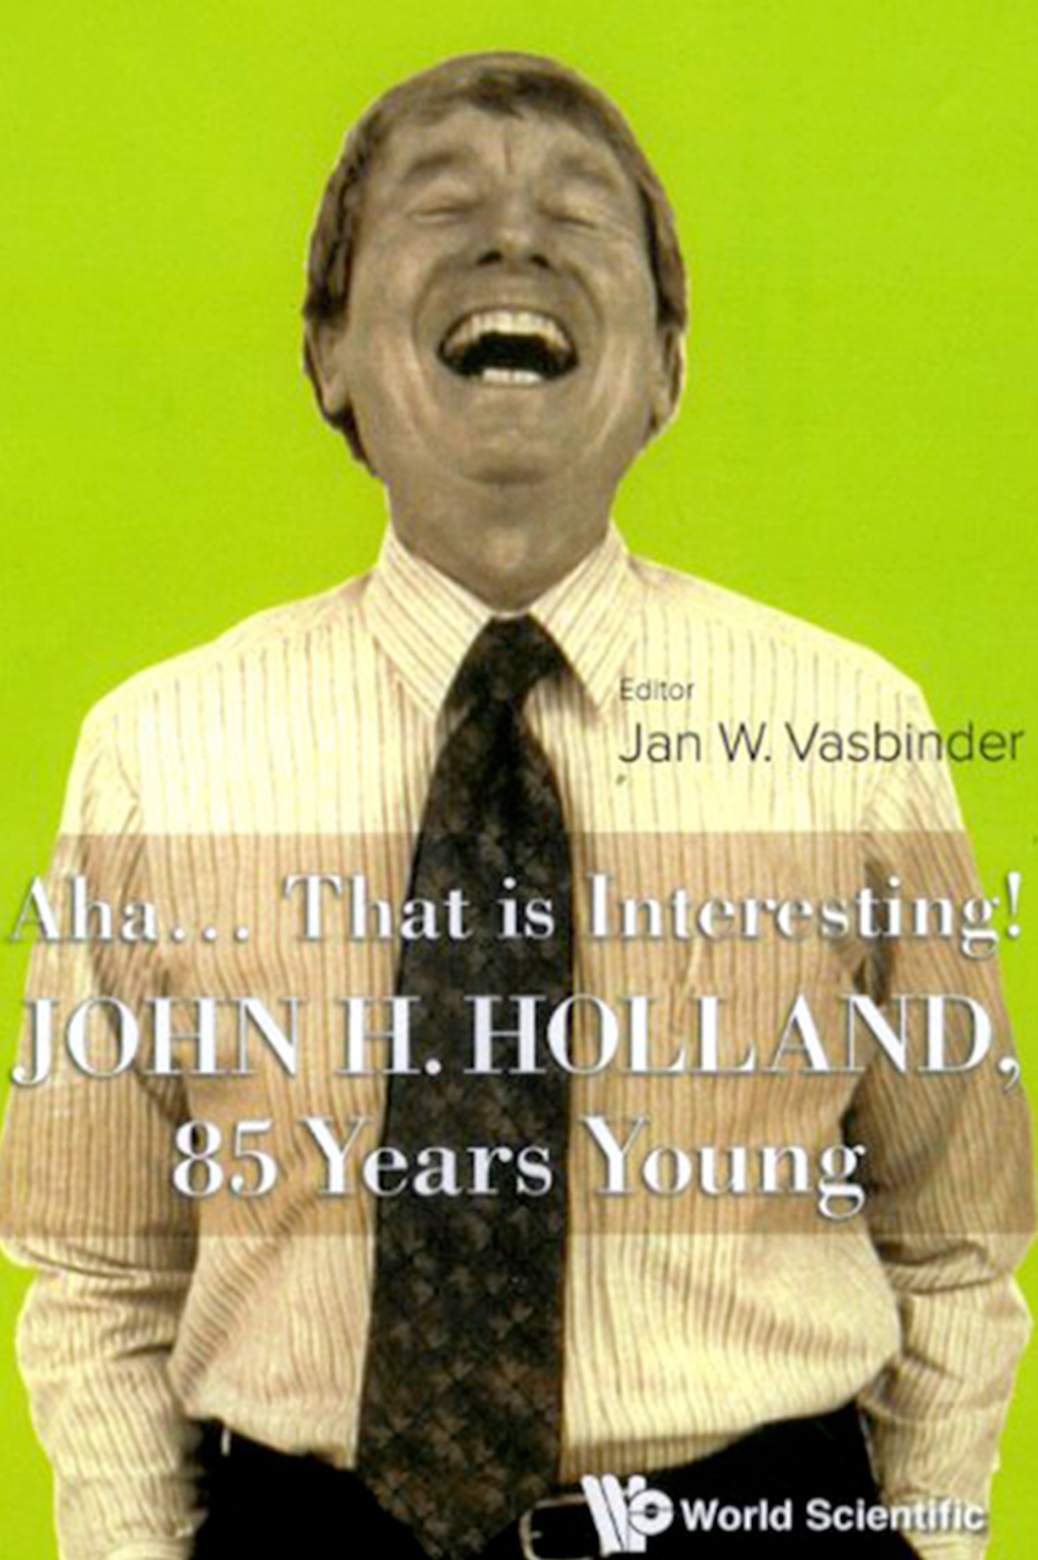 John Henry Holland's book cover